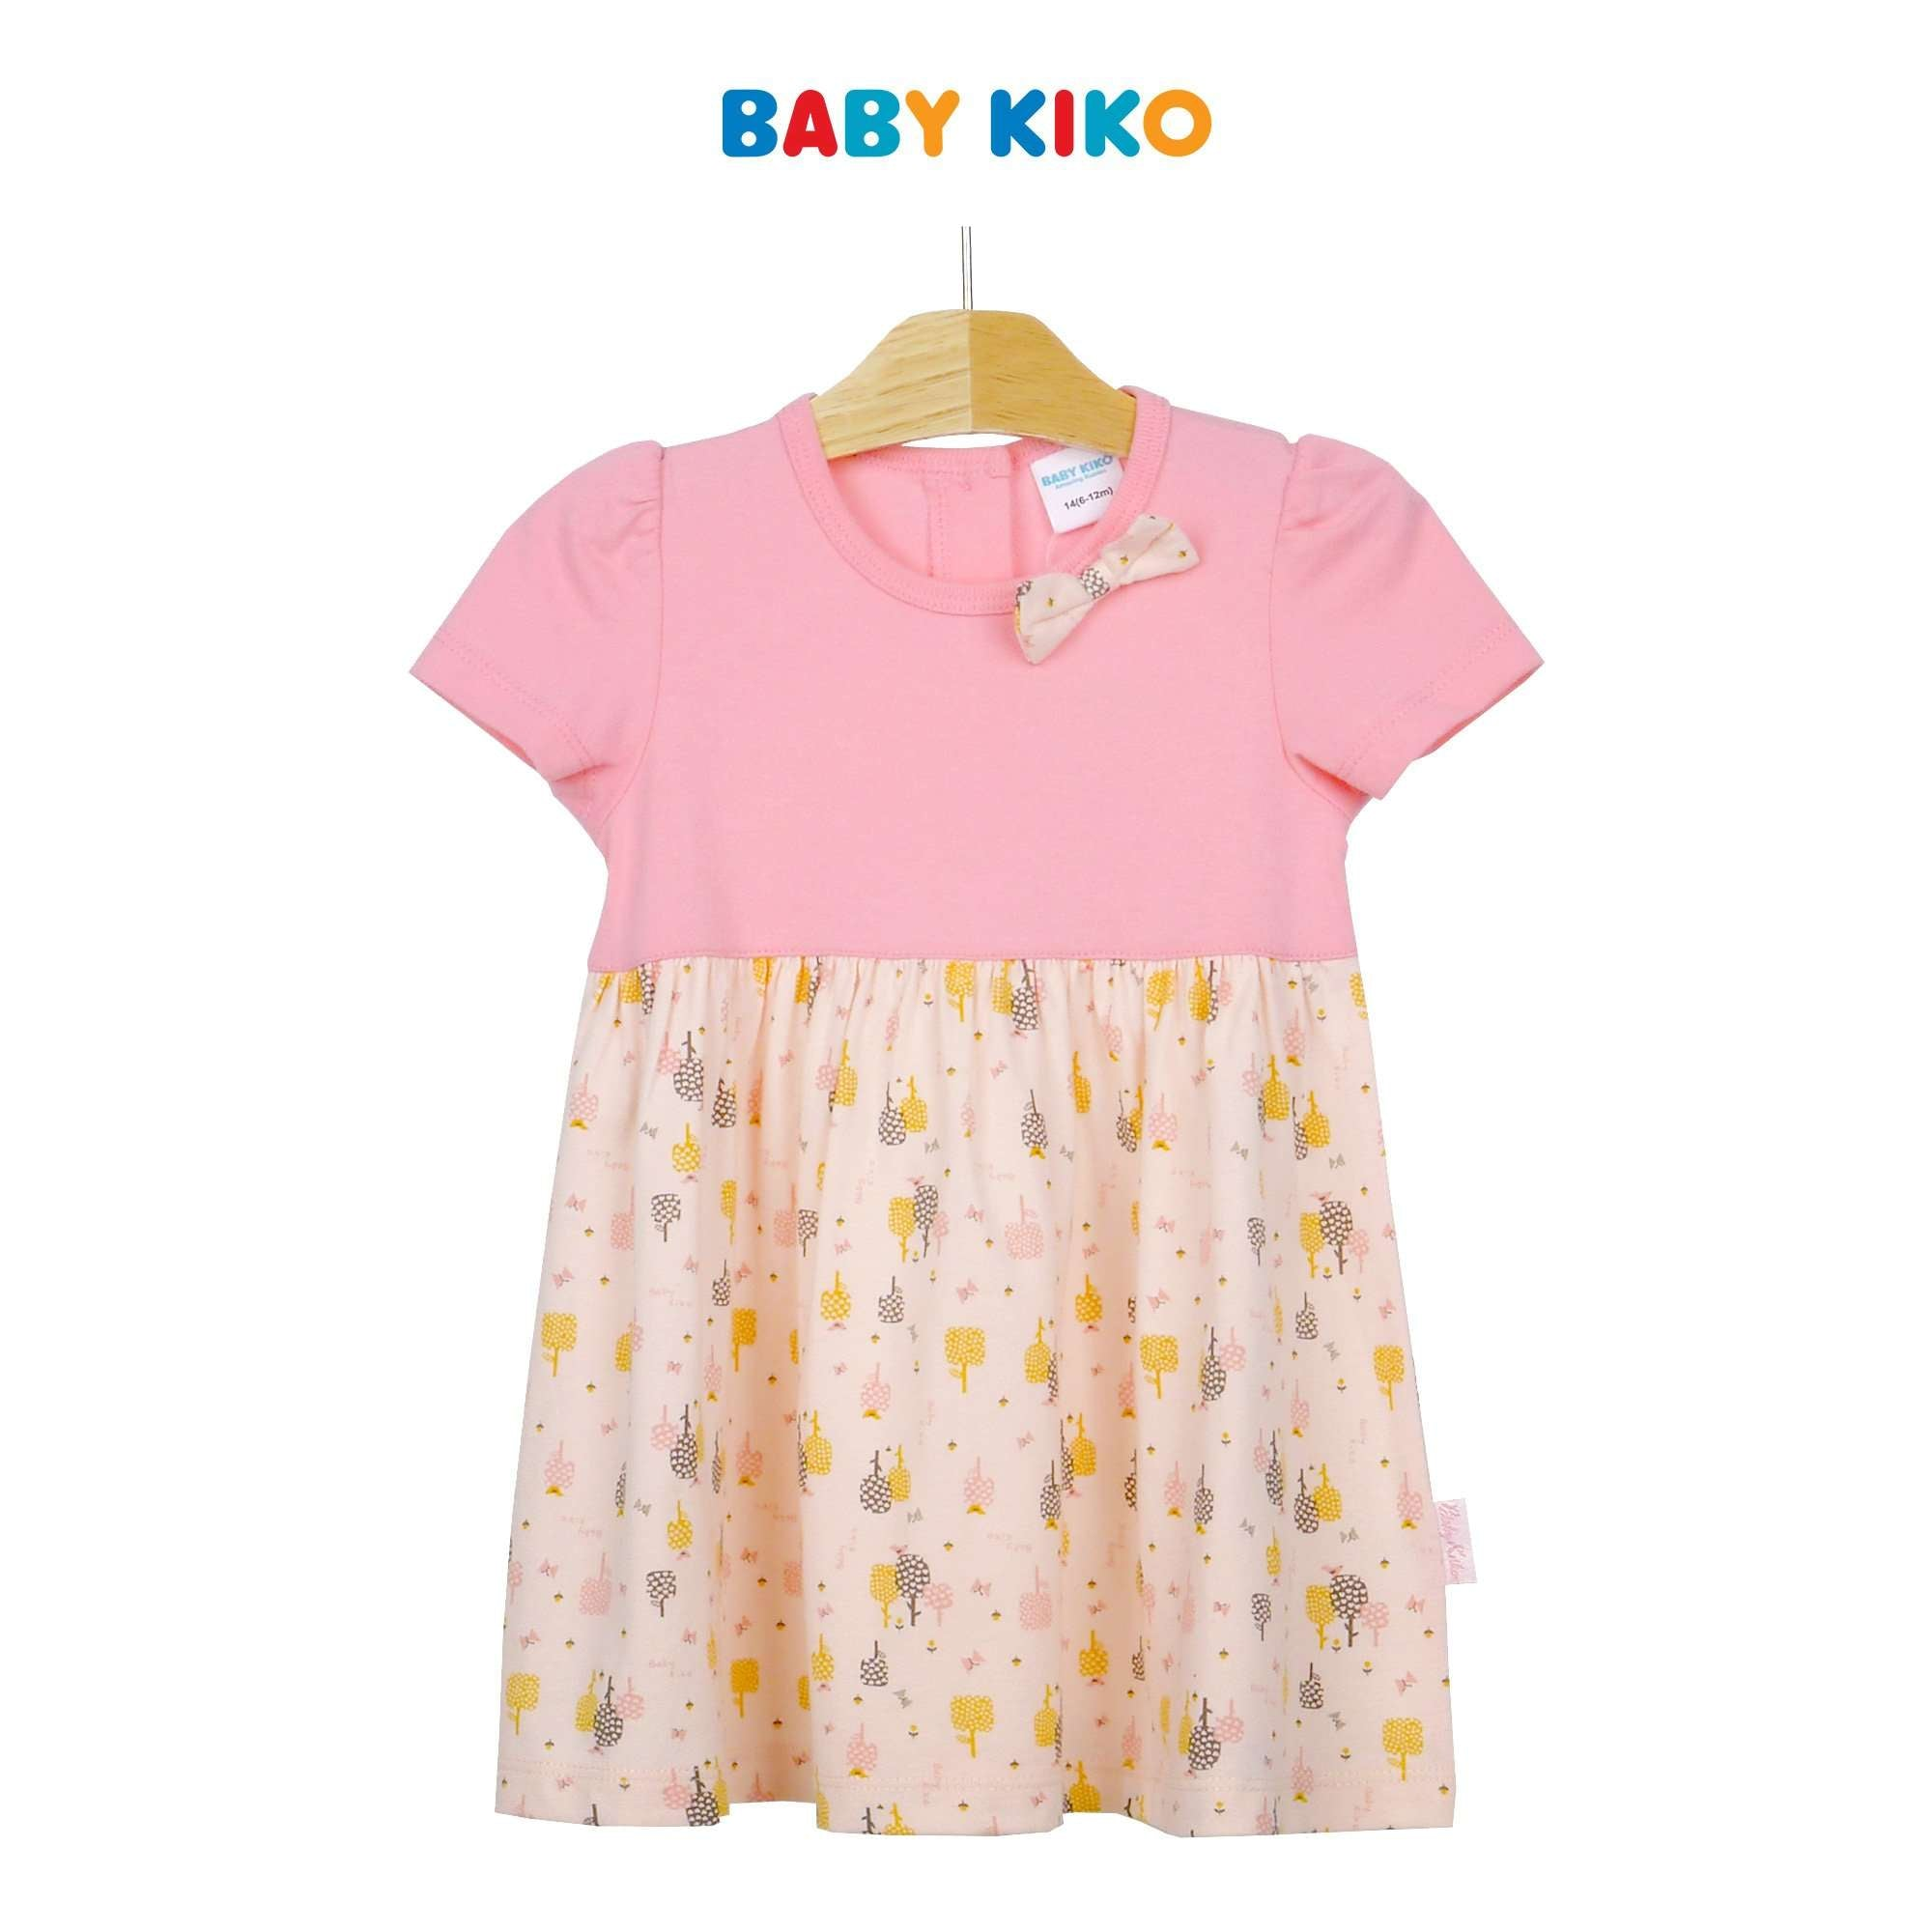 Baby KIKO Baby Girl Short Sleeve Dress 320114-331 : Buy Baby KIKO online at CMG.MY